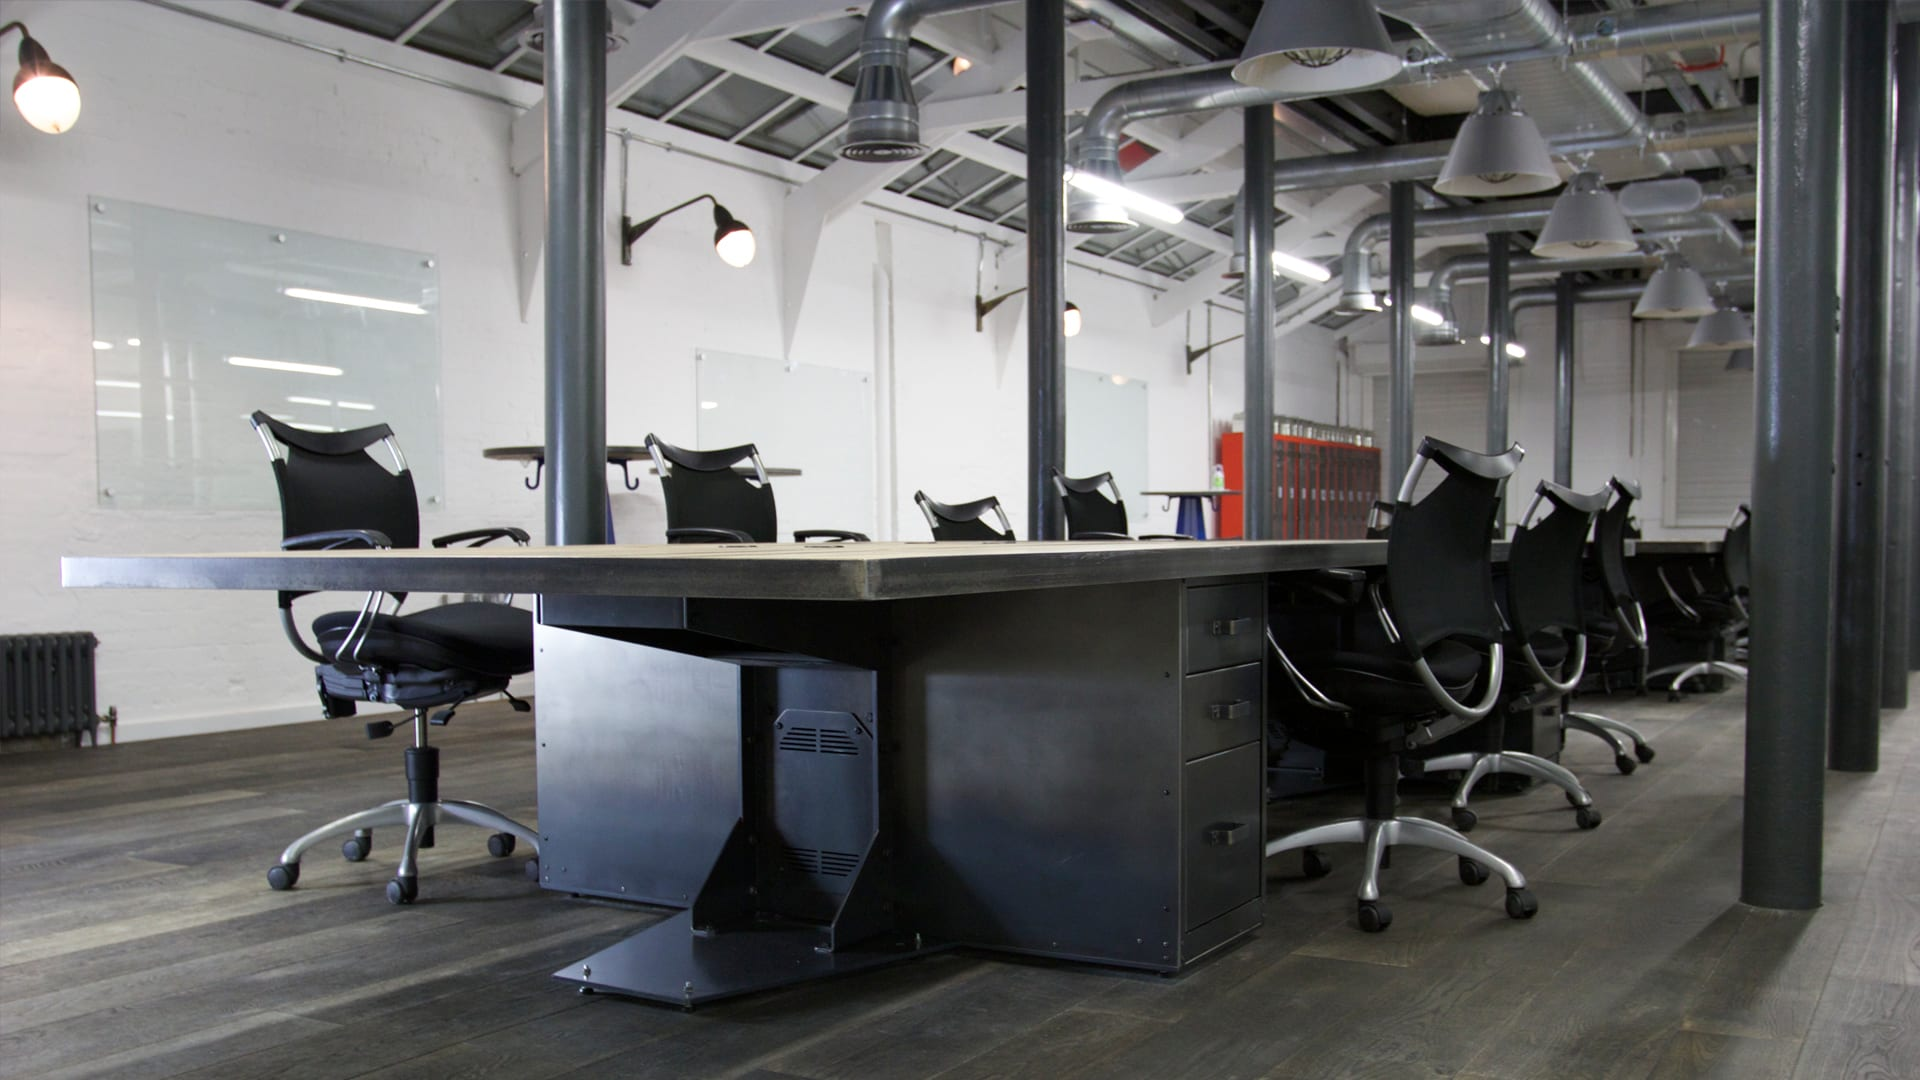 Steel Vintage Blog - 5 Easy Ways to Transform Your Office Space